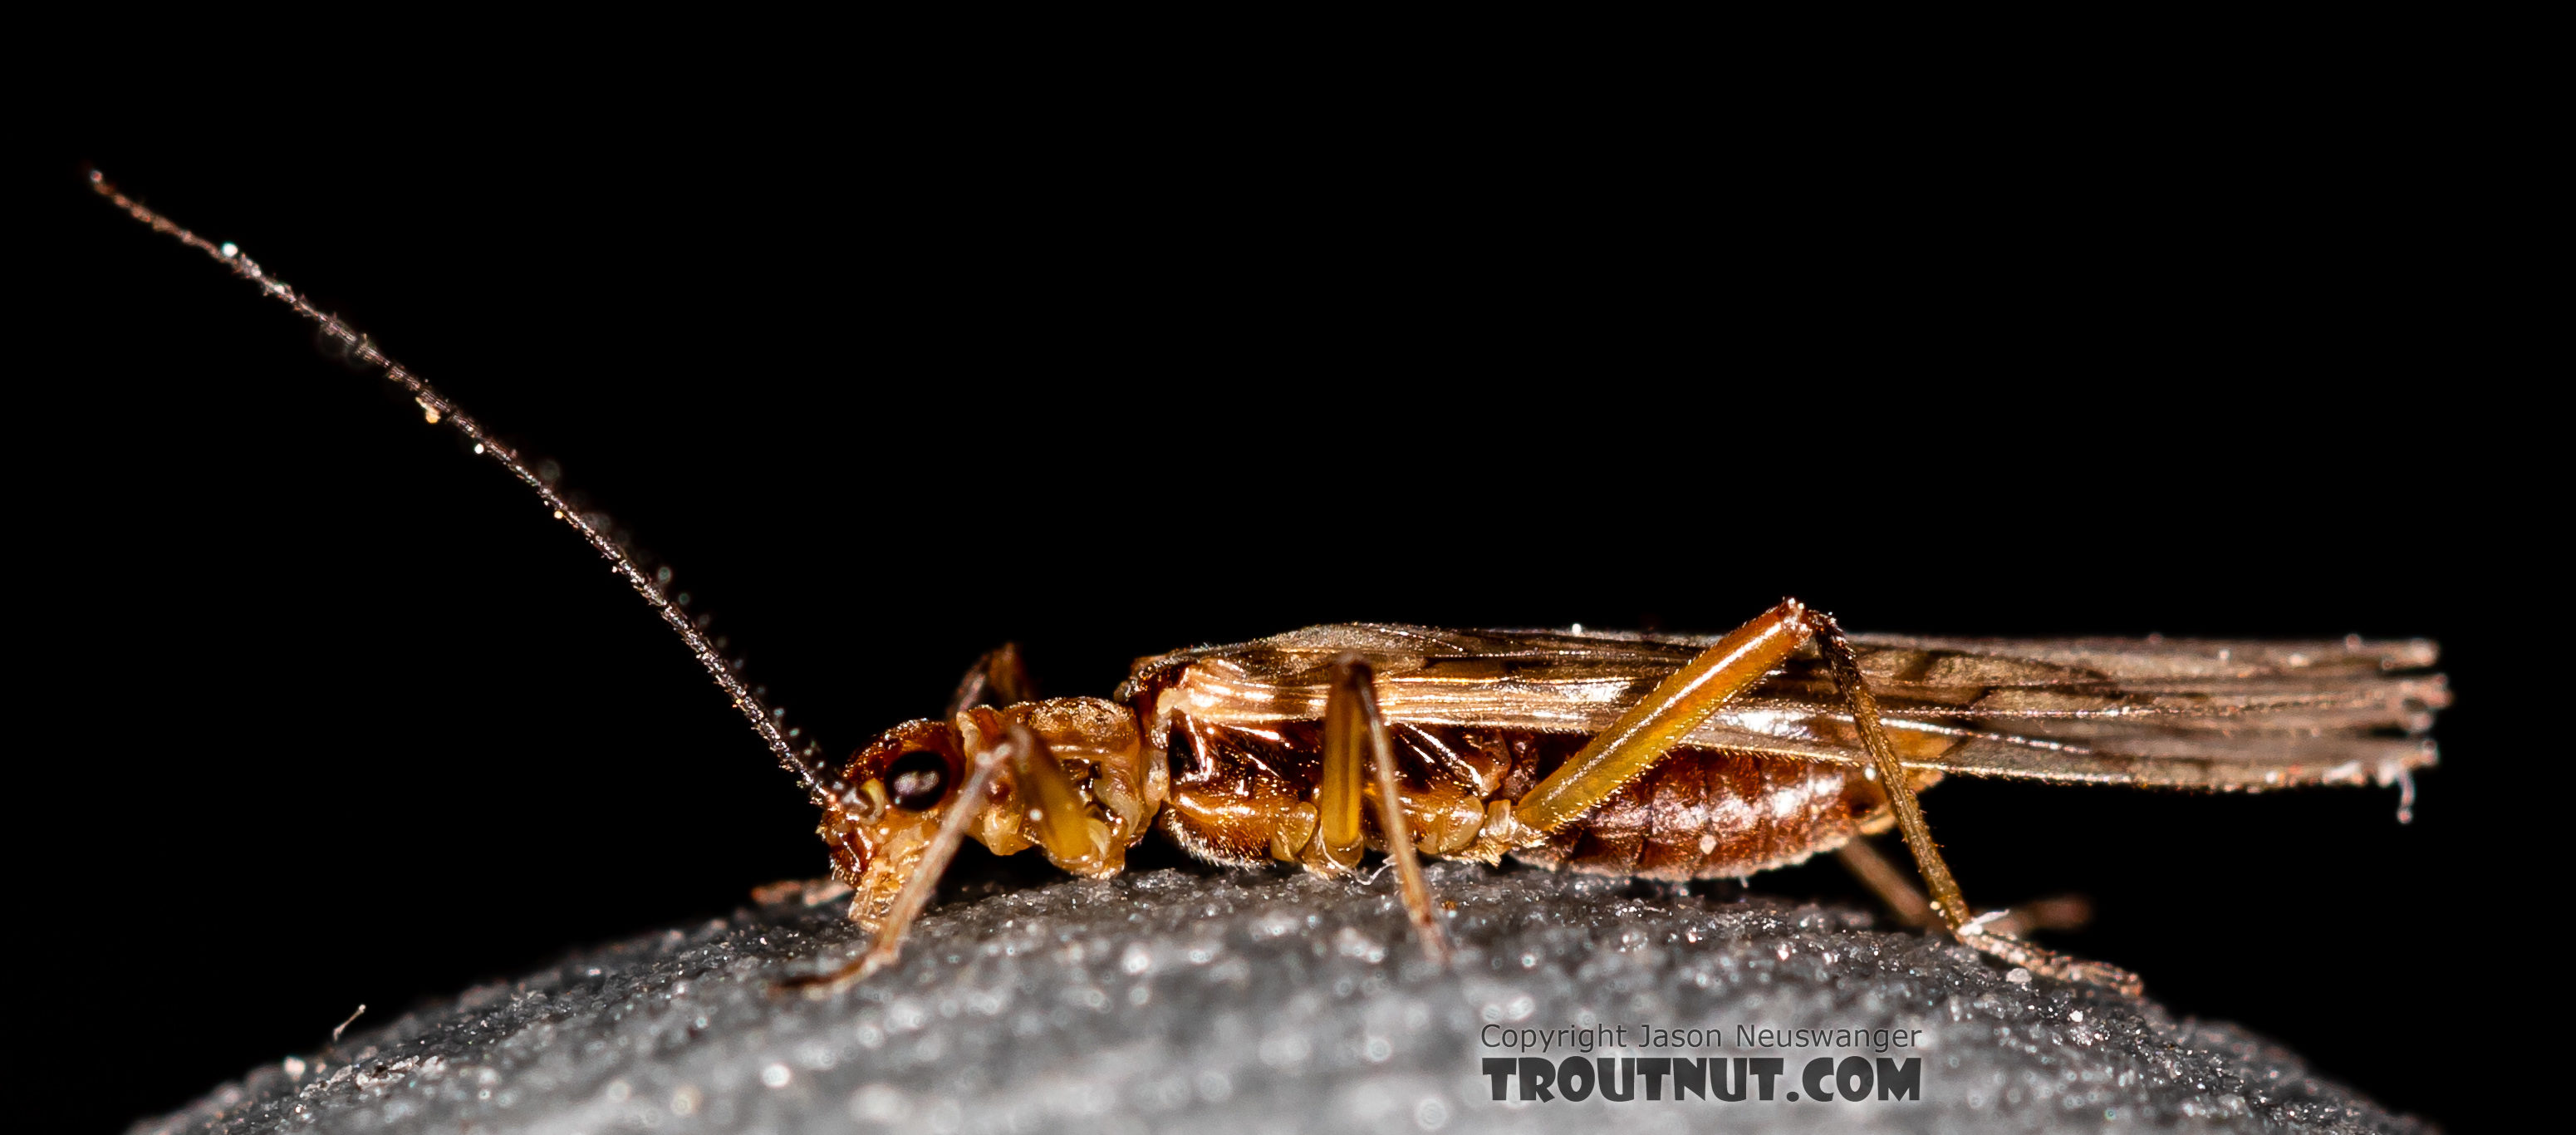 Male Malenka tina (Tiny Winter Black) Stonefly Adult from the Madison River in Montana